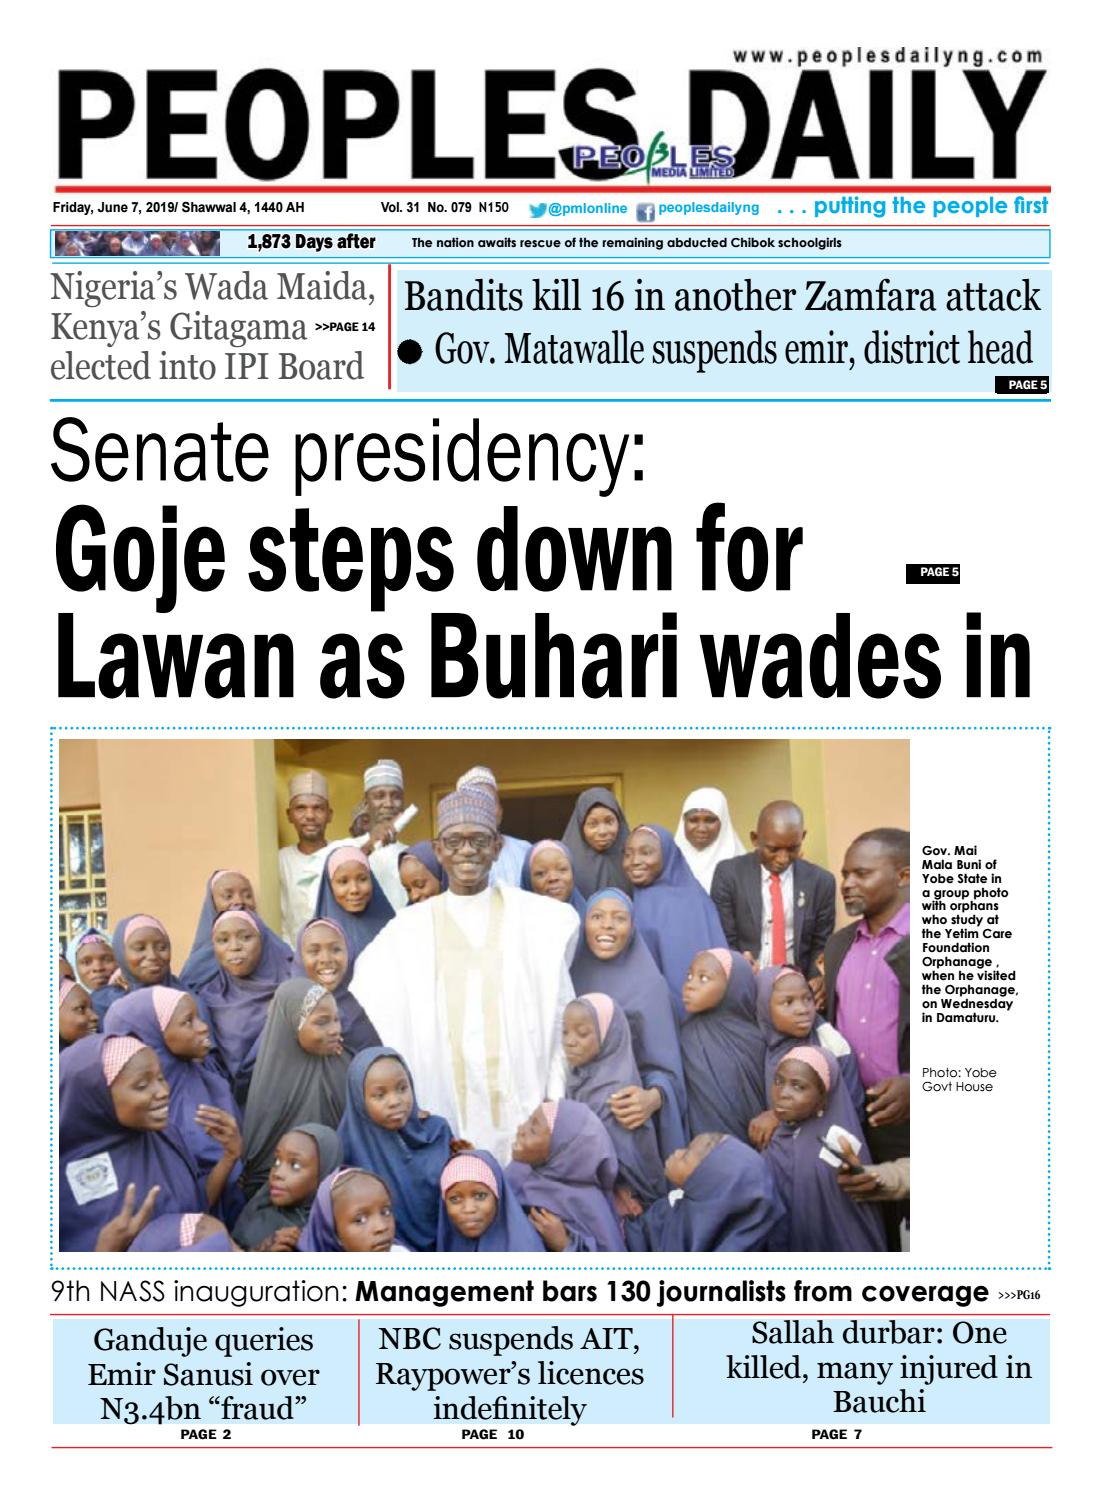 Friday, June 7, 2019 Edition by Peoples Media Limited - issuu